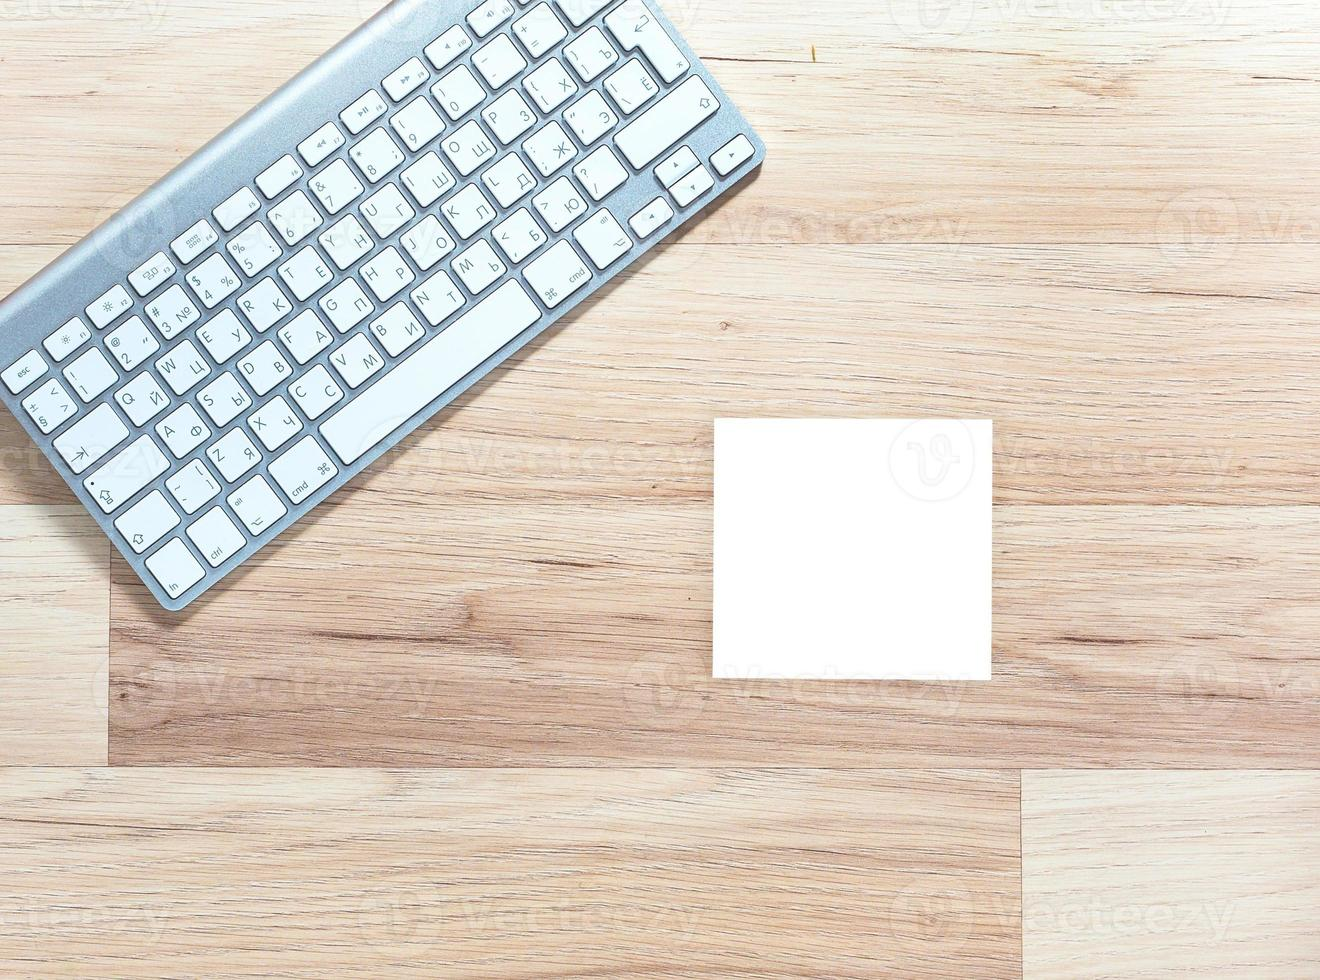 metal keyboard and blank white notepad on wooden table photo